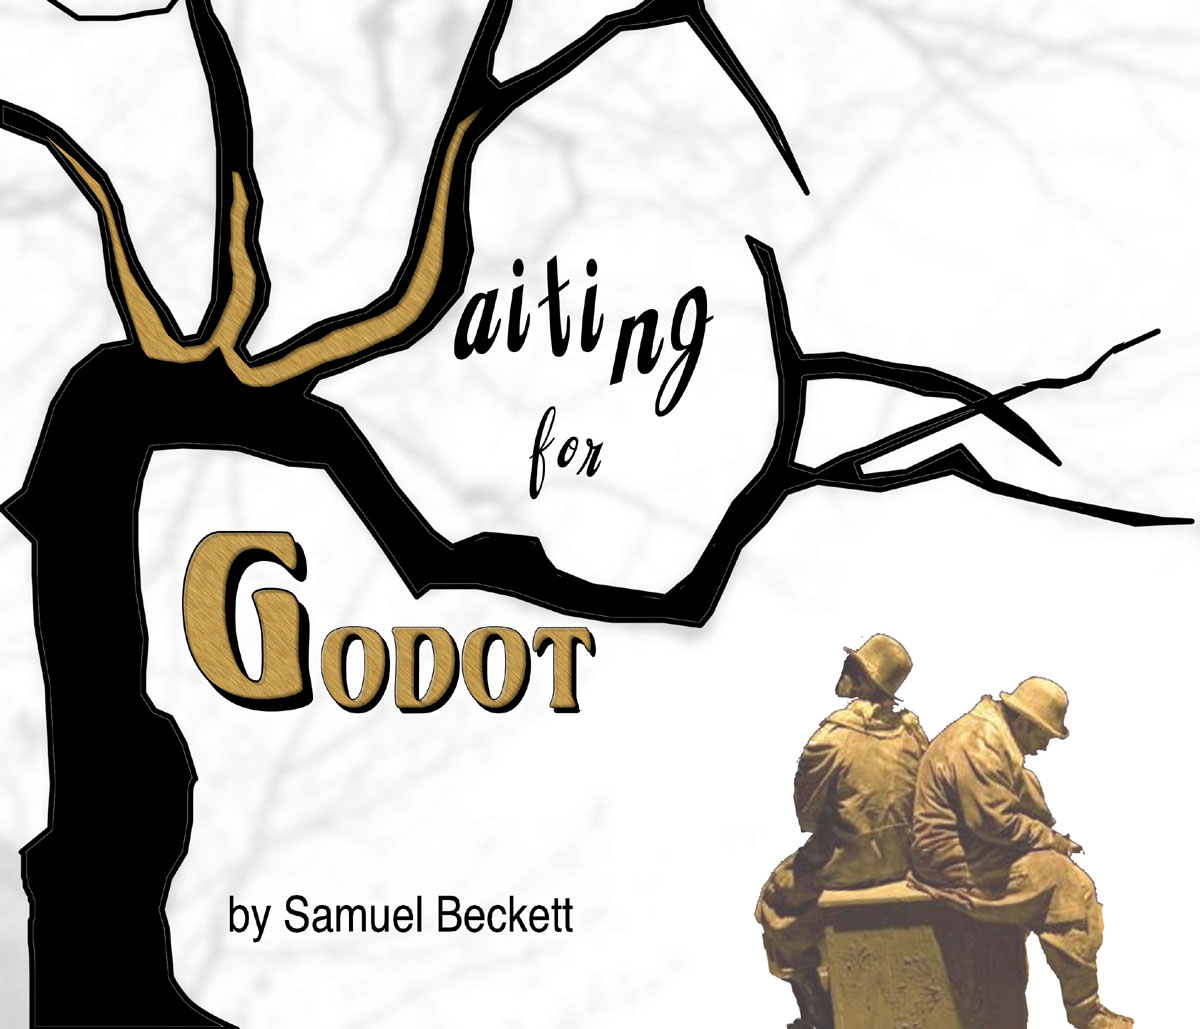 comment on waiting for godot as an absurd drama Get an answer for 'demonstrate the elements of absurd drama in waiting for godot' and find homework help for other waiting for godot questions at enotes.